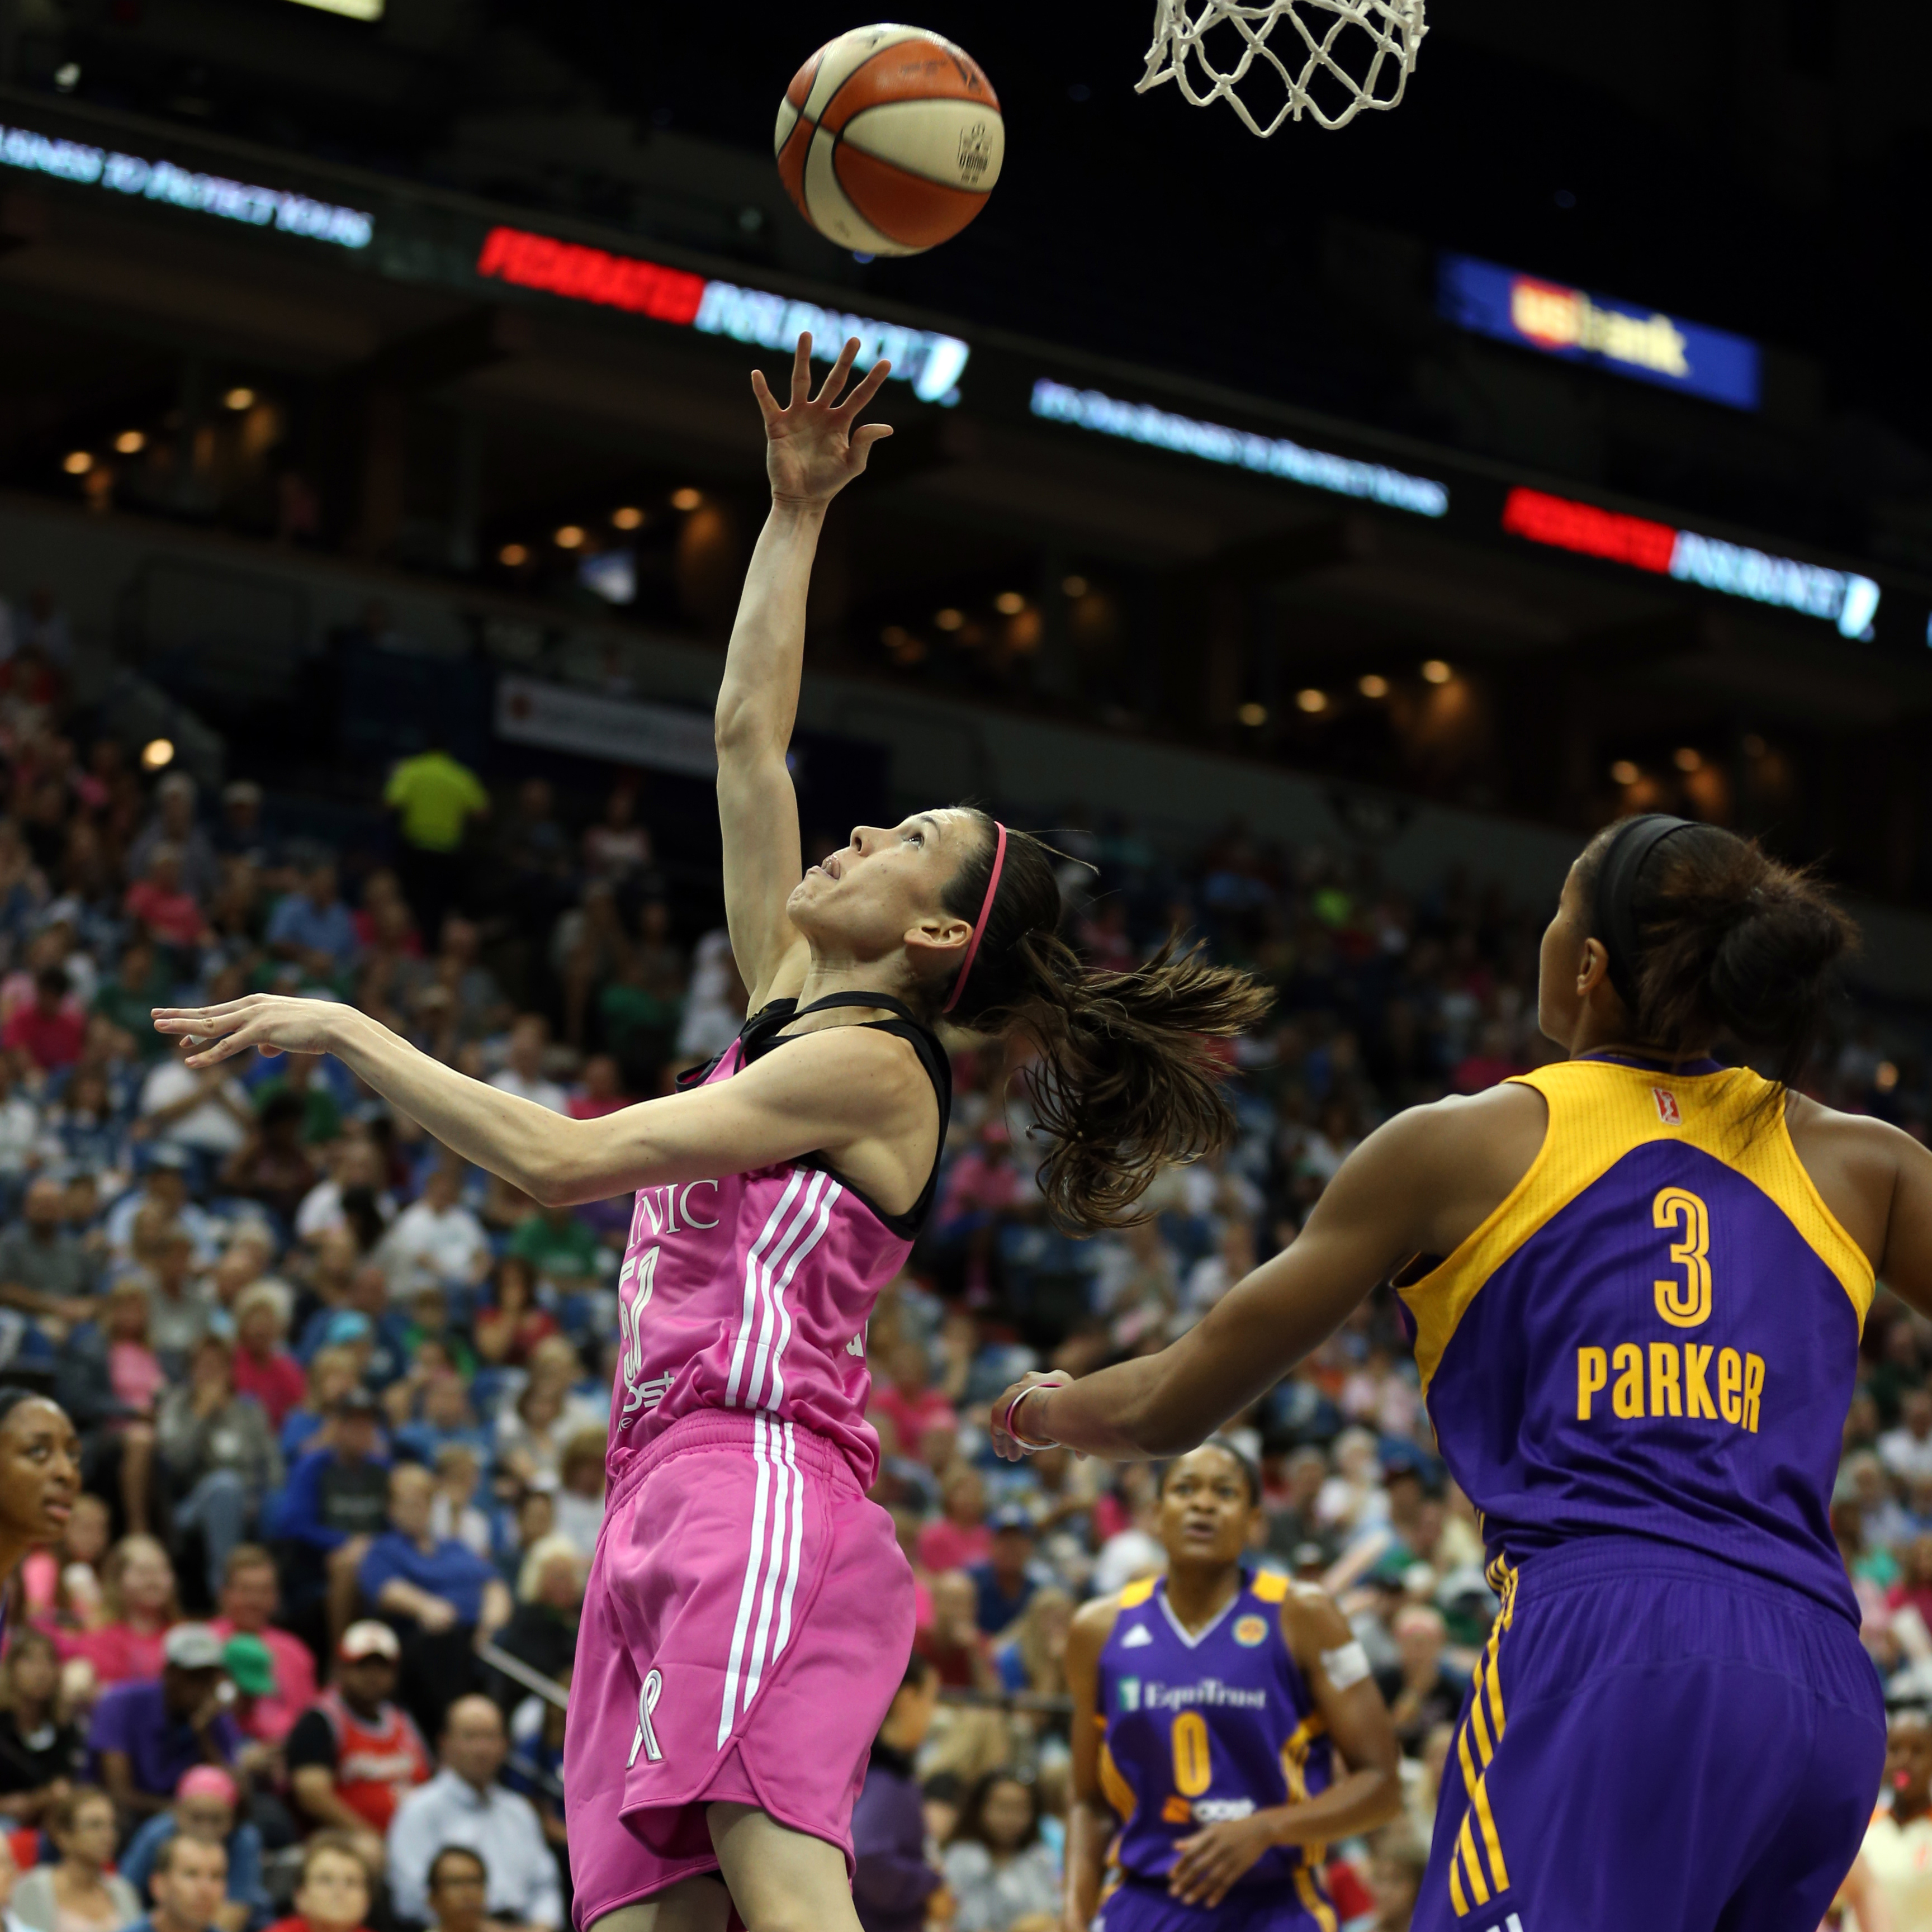 Lynx guard Anna Cruz failed to get going offensively, finishing with just four points on 2-of-6 shooting (33 percent), but played great defense and helped to contain the Sparks' dangerous guards.